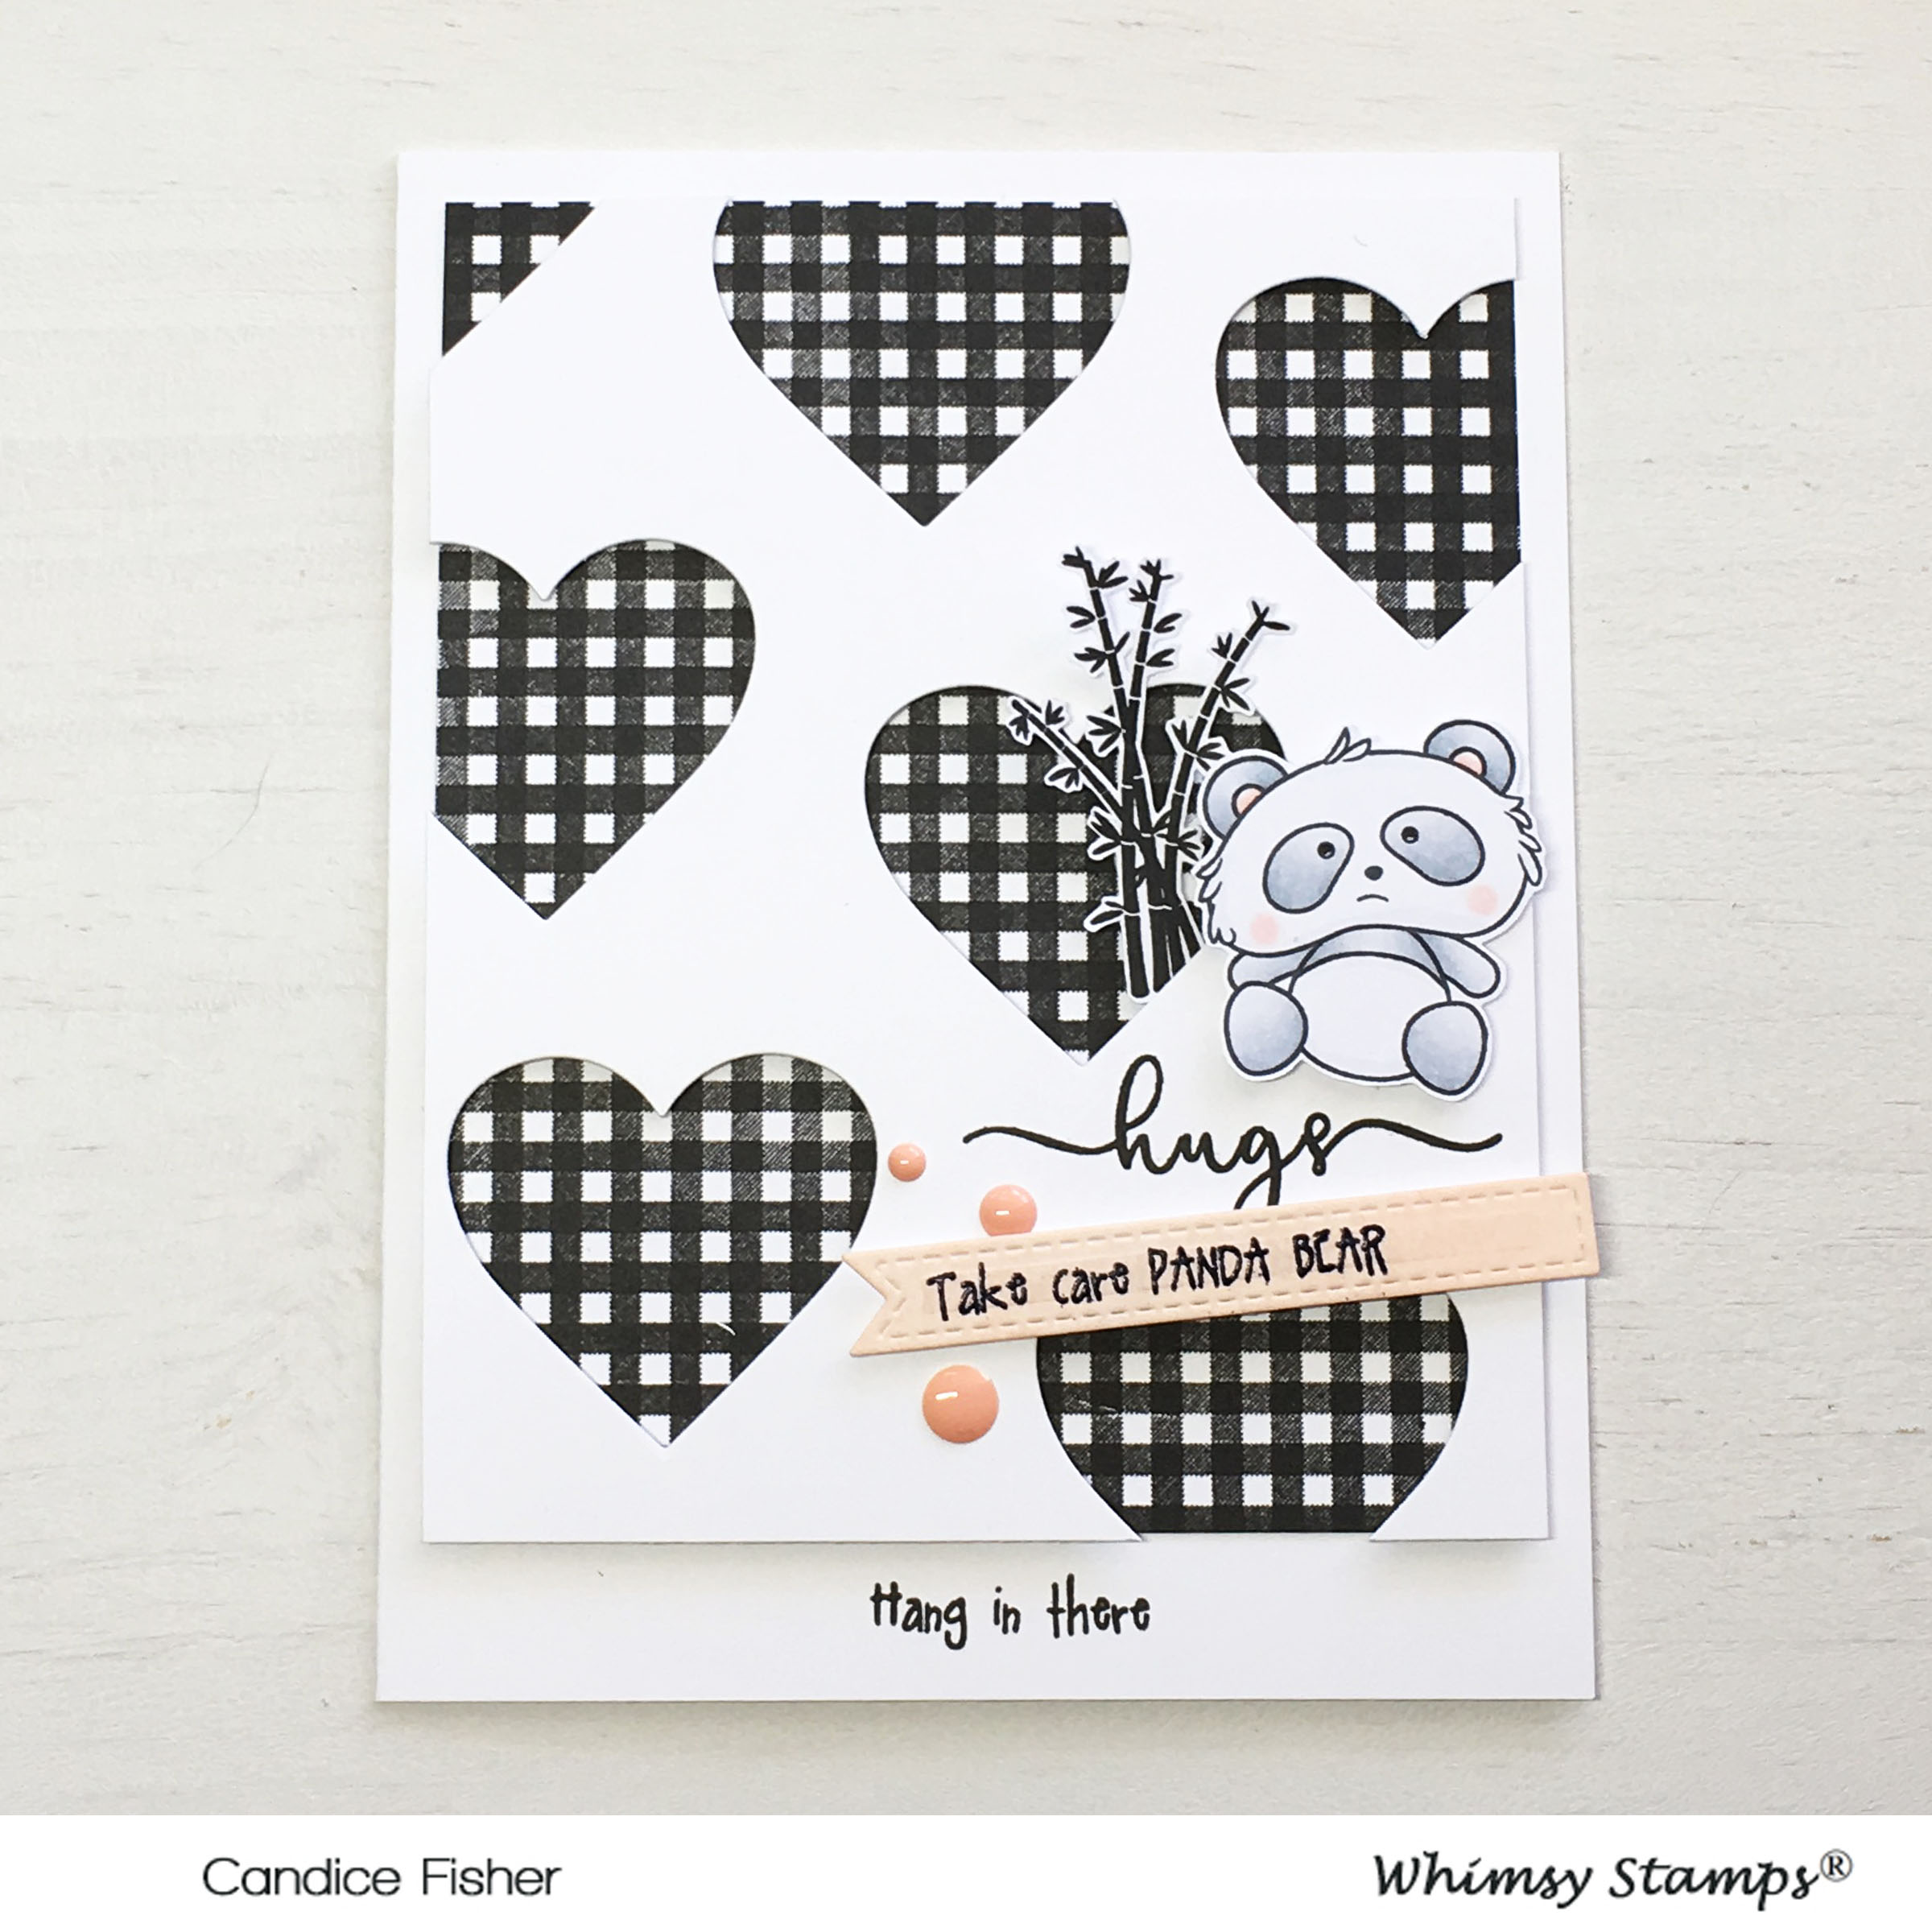 GD whimsy stamps card 3 2nd